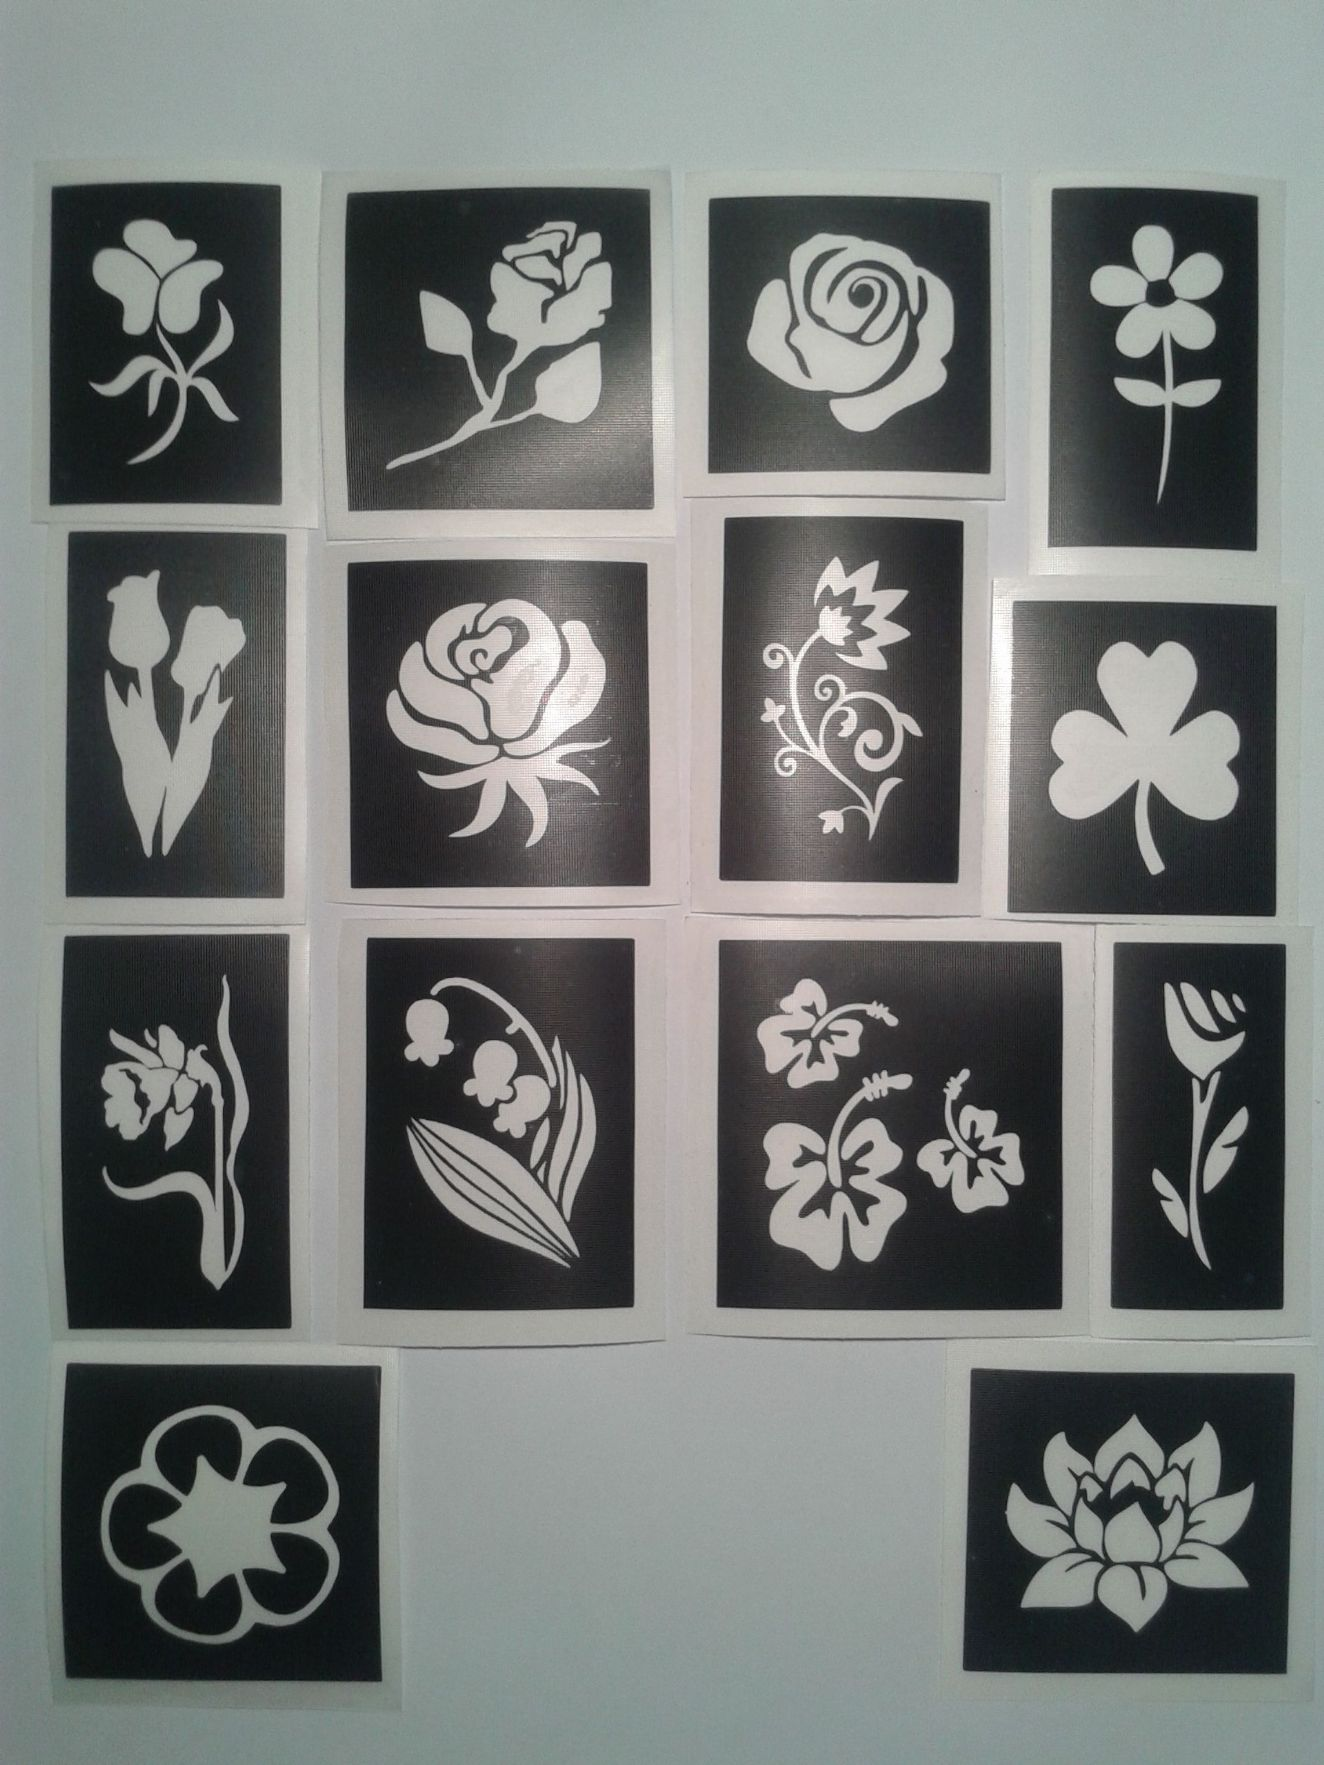 Flower Themed Stencils For Glitter Tattoos Airbrush Henna Cakes Many